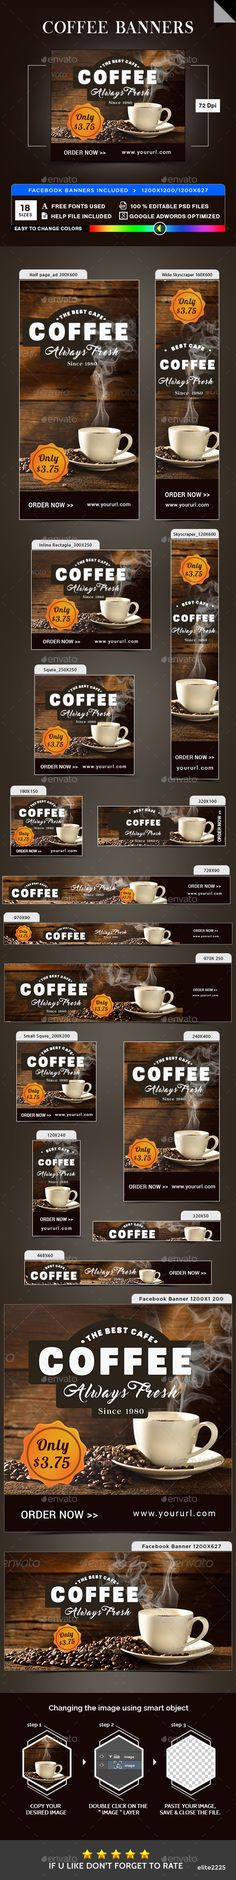 Coffee Banners - Banners & Ads Web Elements Download here : https://graphicriver.net/item/coffee-banners/19873292?s_rank=92&ref=Al-fatih